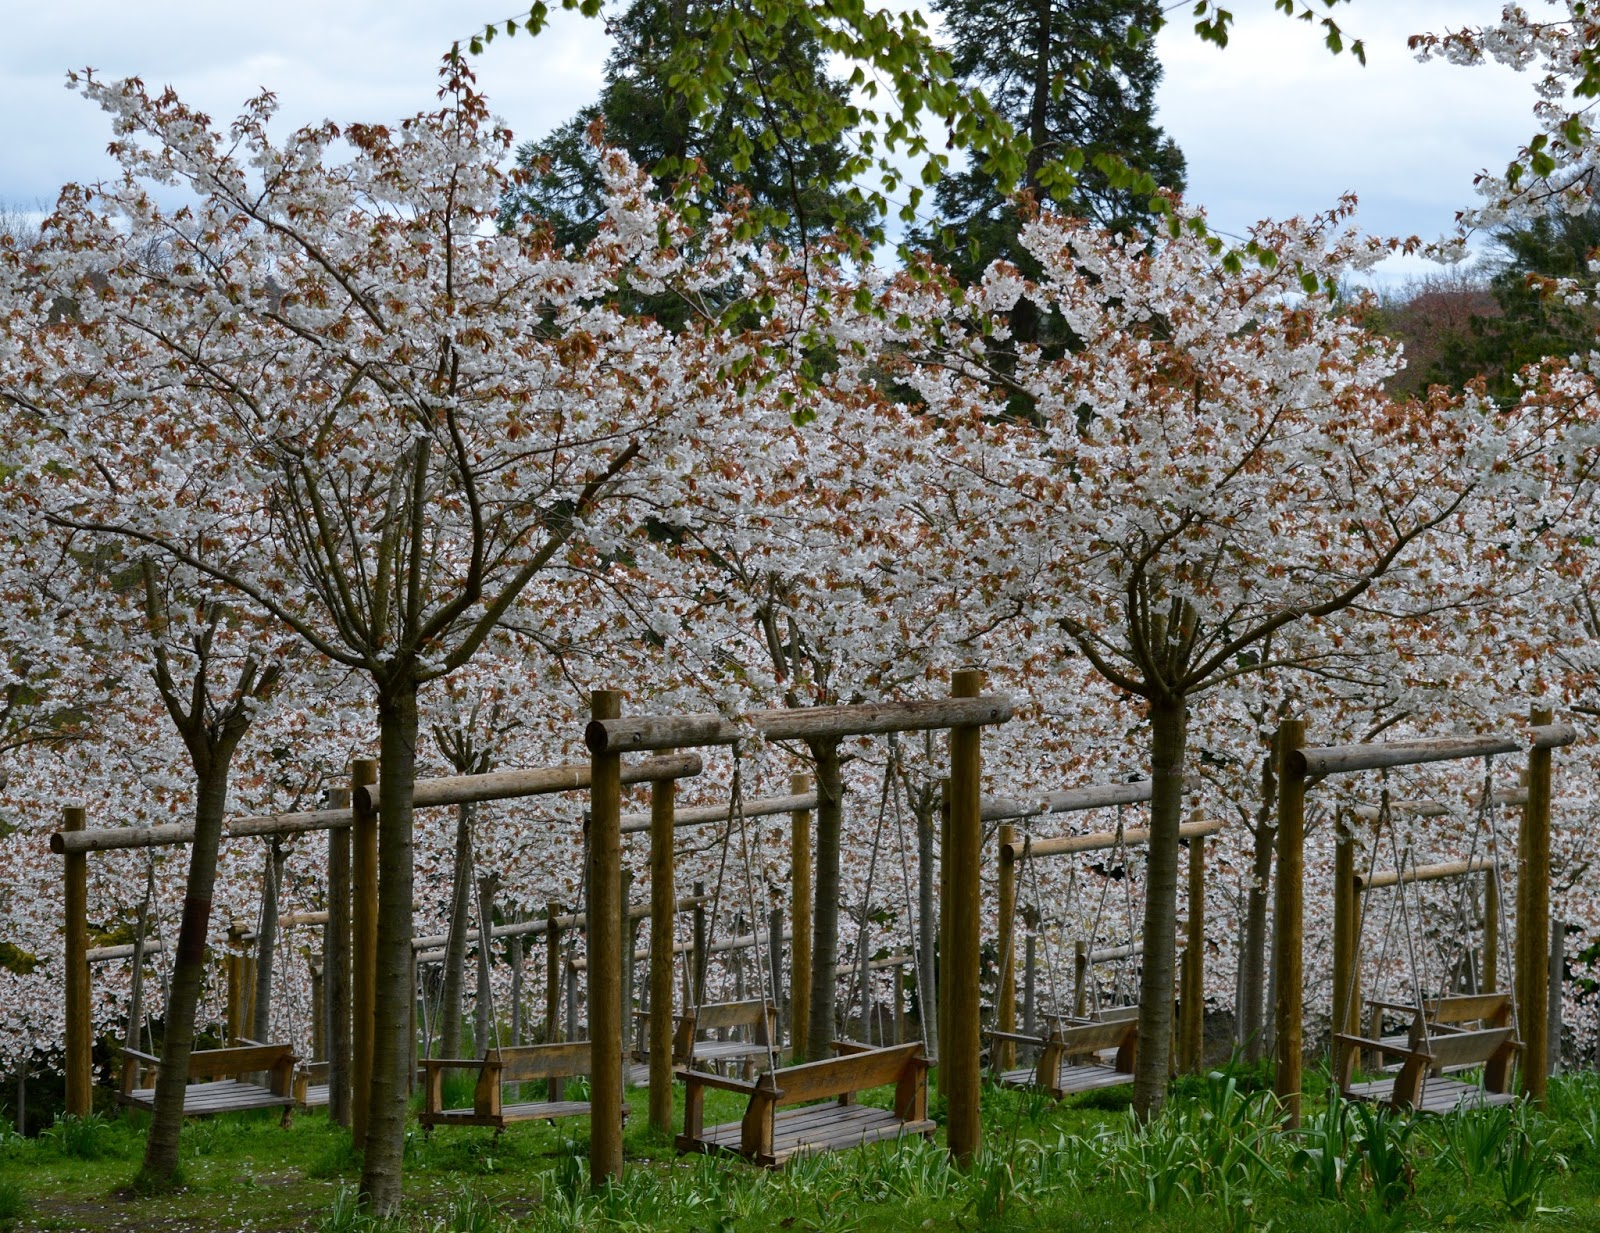 The Cherry Blossom Orchard at The Alnwick Garden  - garden swings